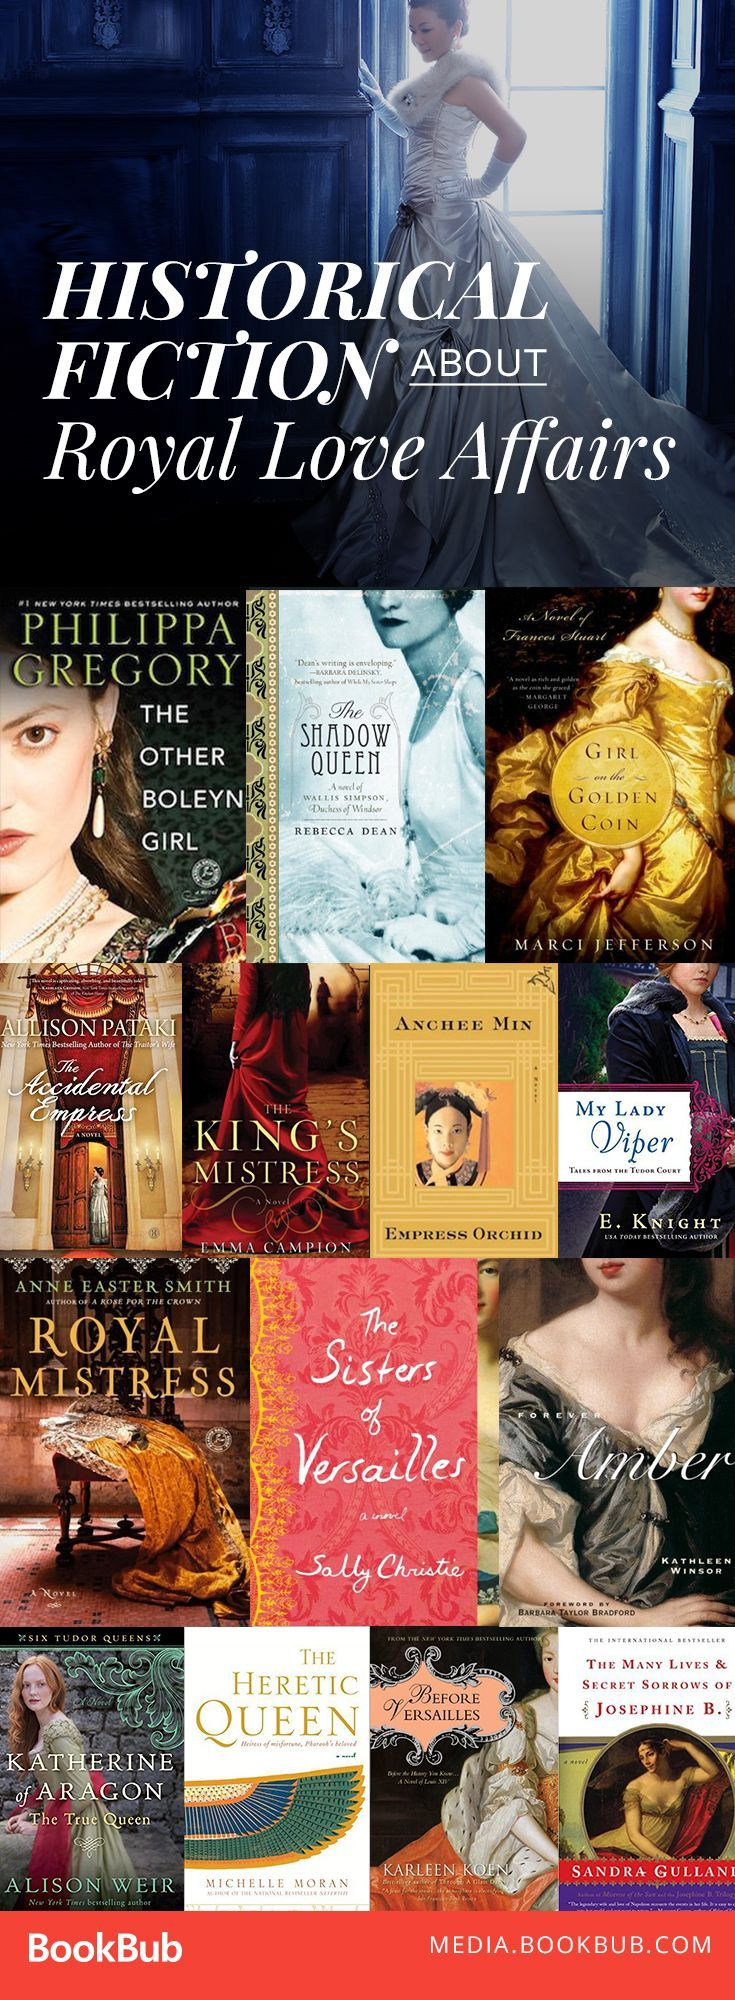 15 Historical Fiction Books About Royal Love Affairs That Changed Everything